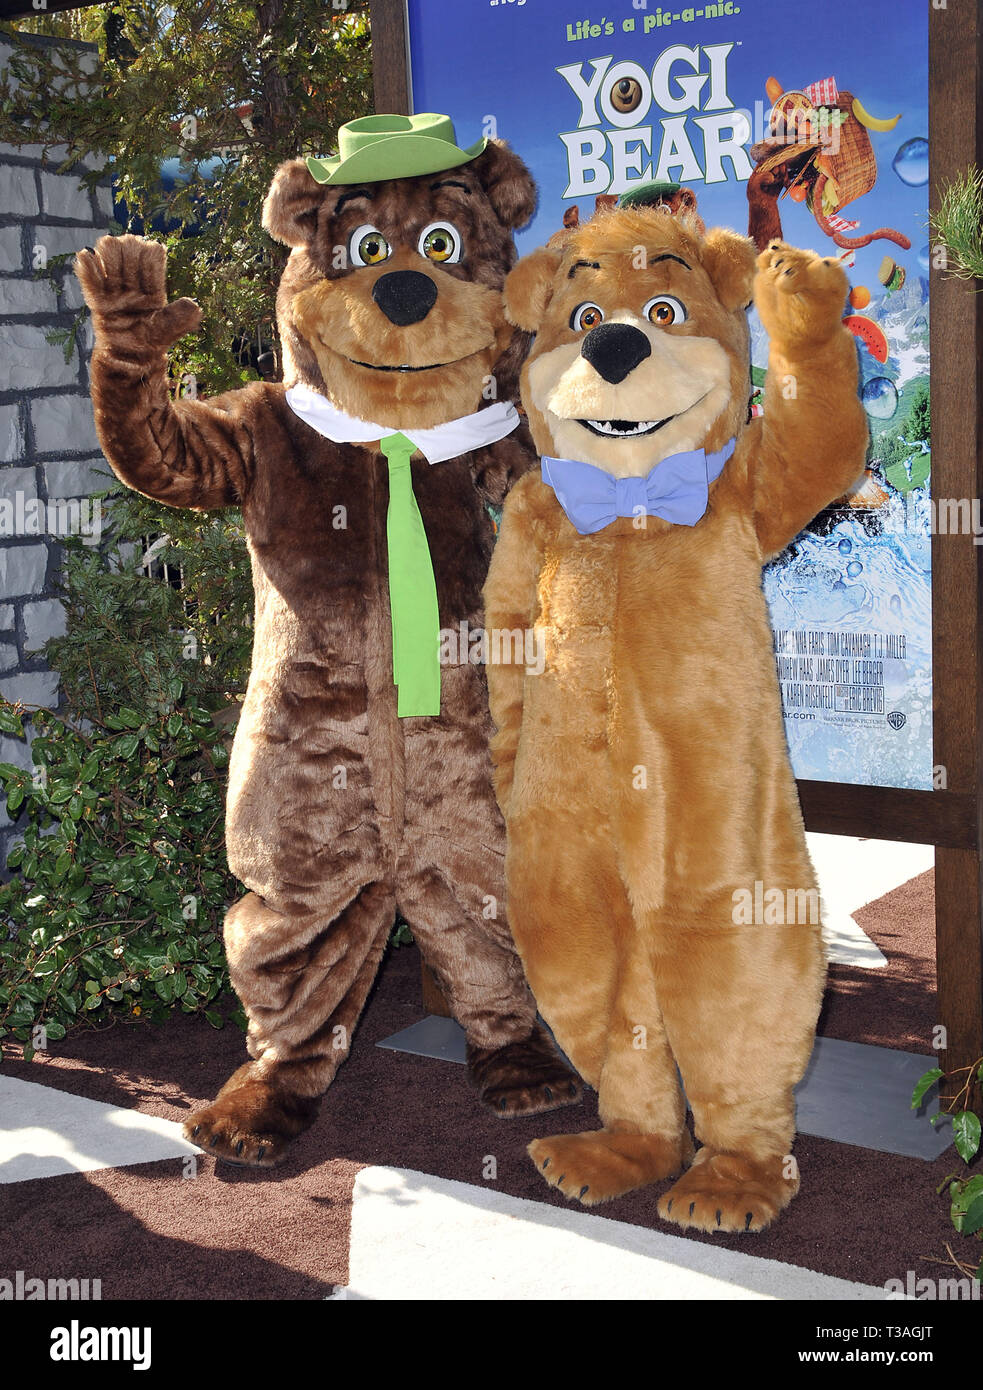 Yogi Bear And Booboo Yogi Bear Premiere At The Westwood Village Theatre In Los Angeles Yogi